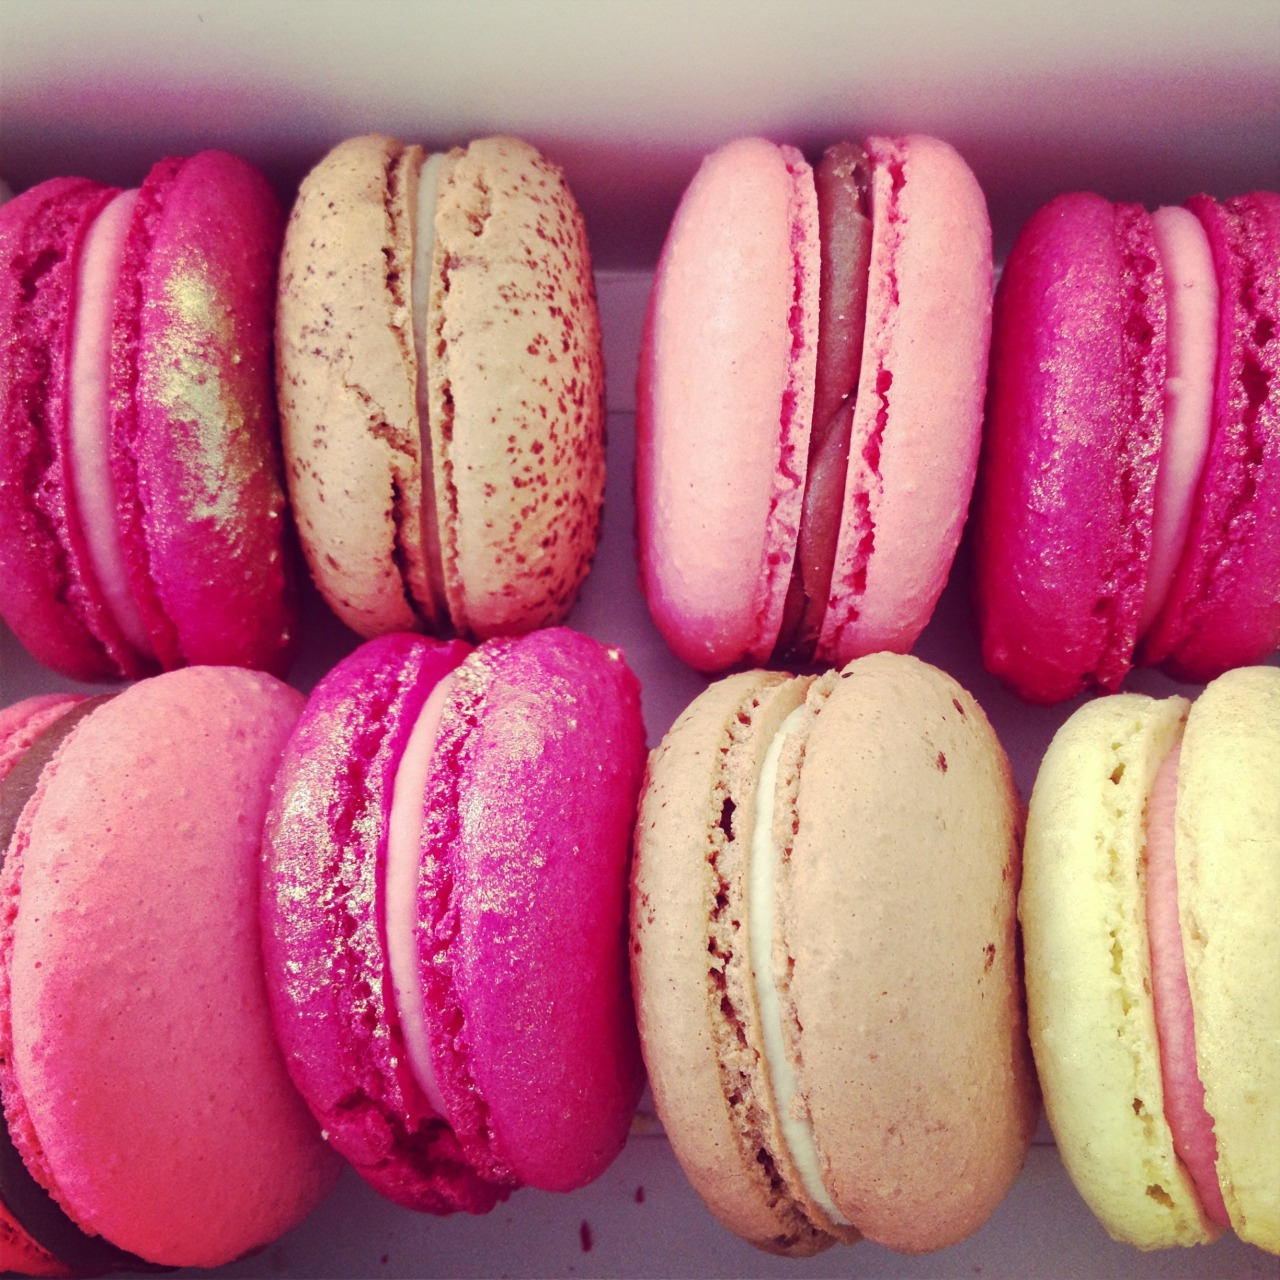 lily-cats:  Got this amazing macarons this morning!